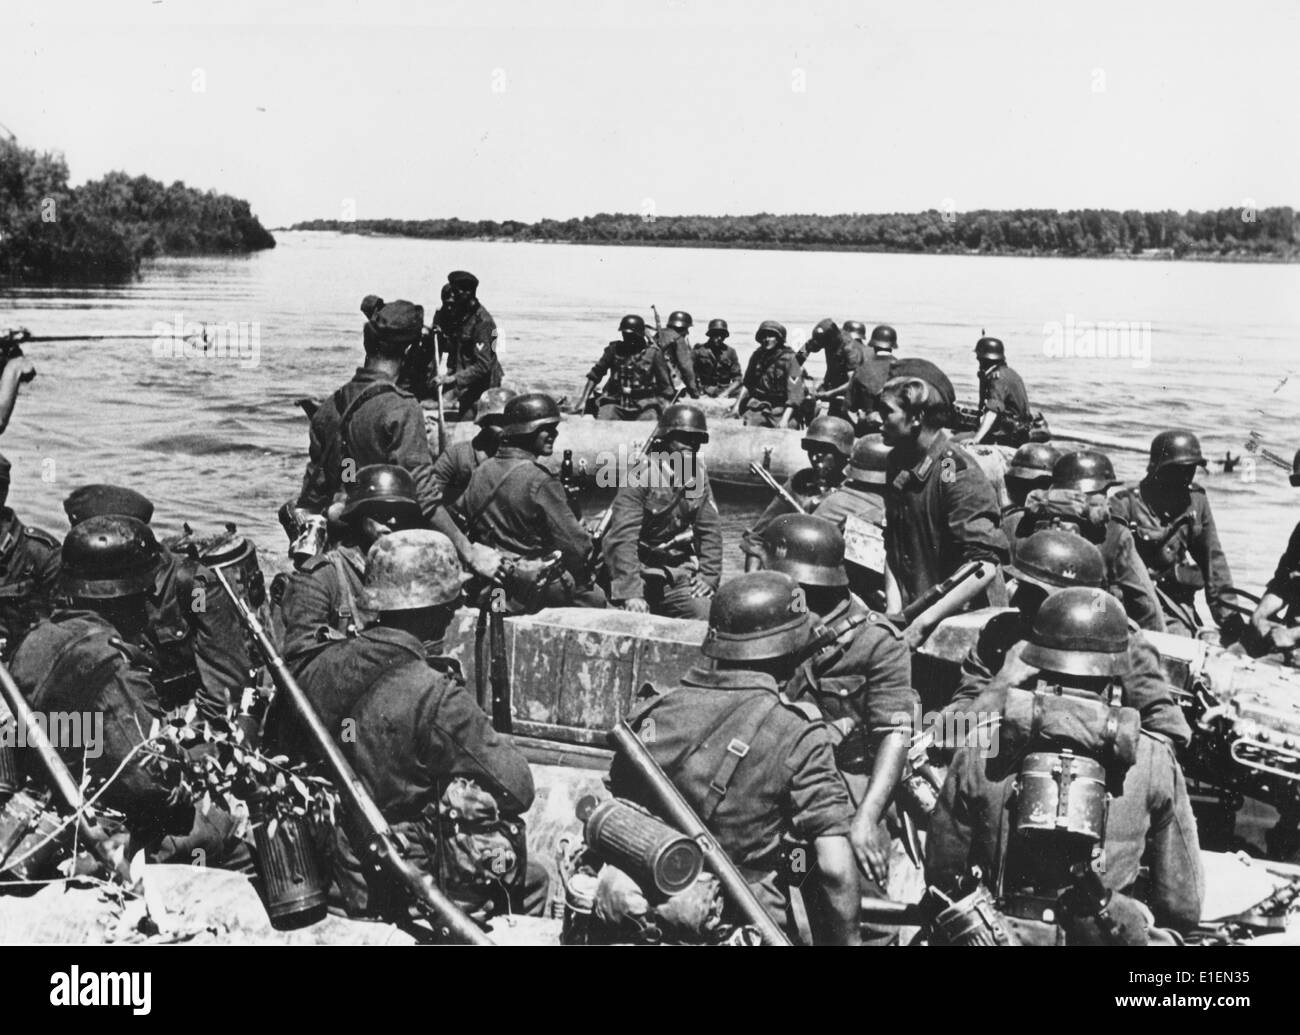 Propaganda text! from Nazi news reporting on the back of the picture: 'With assault boats across the Don River.' Stock Photo